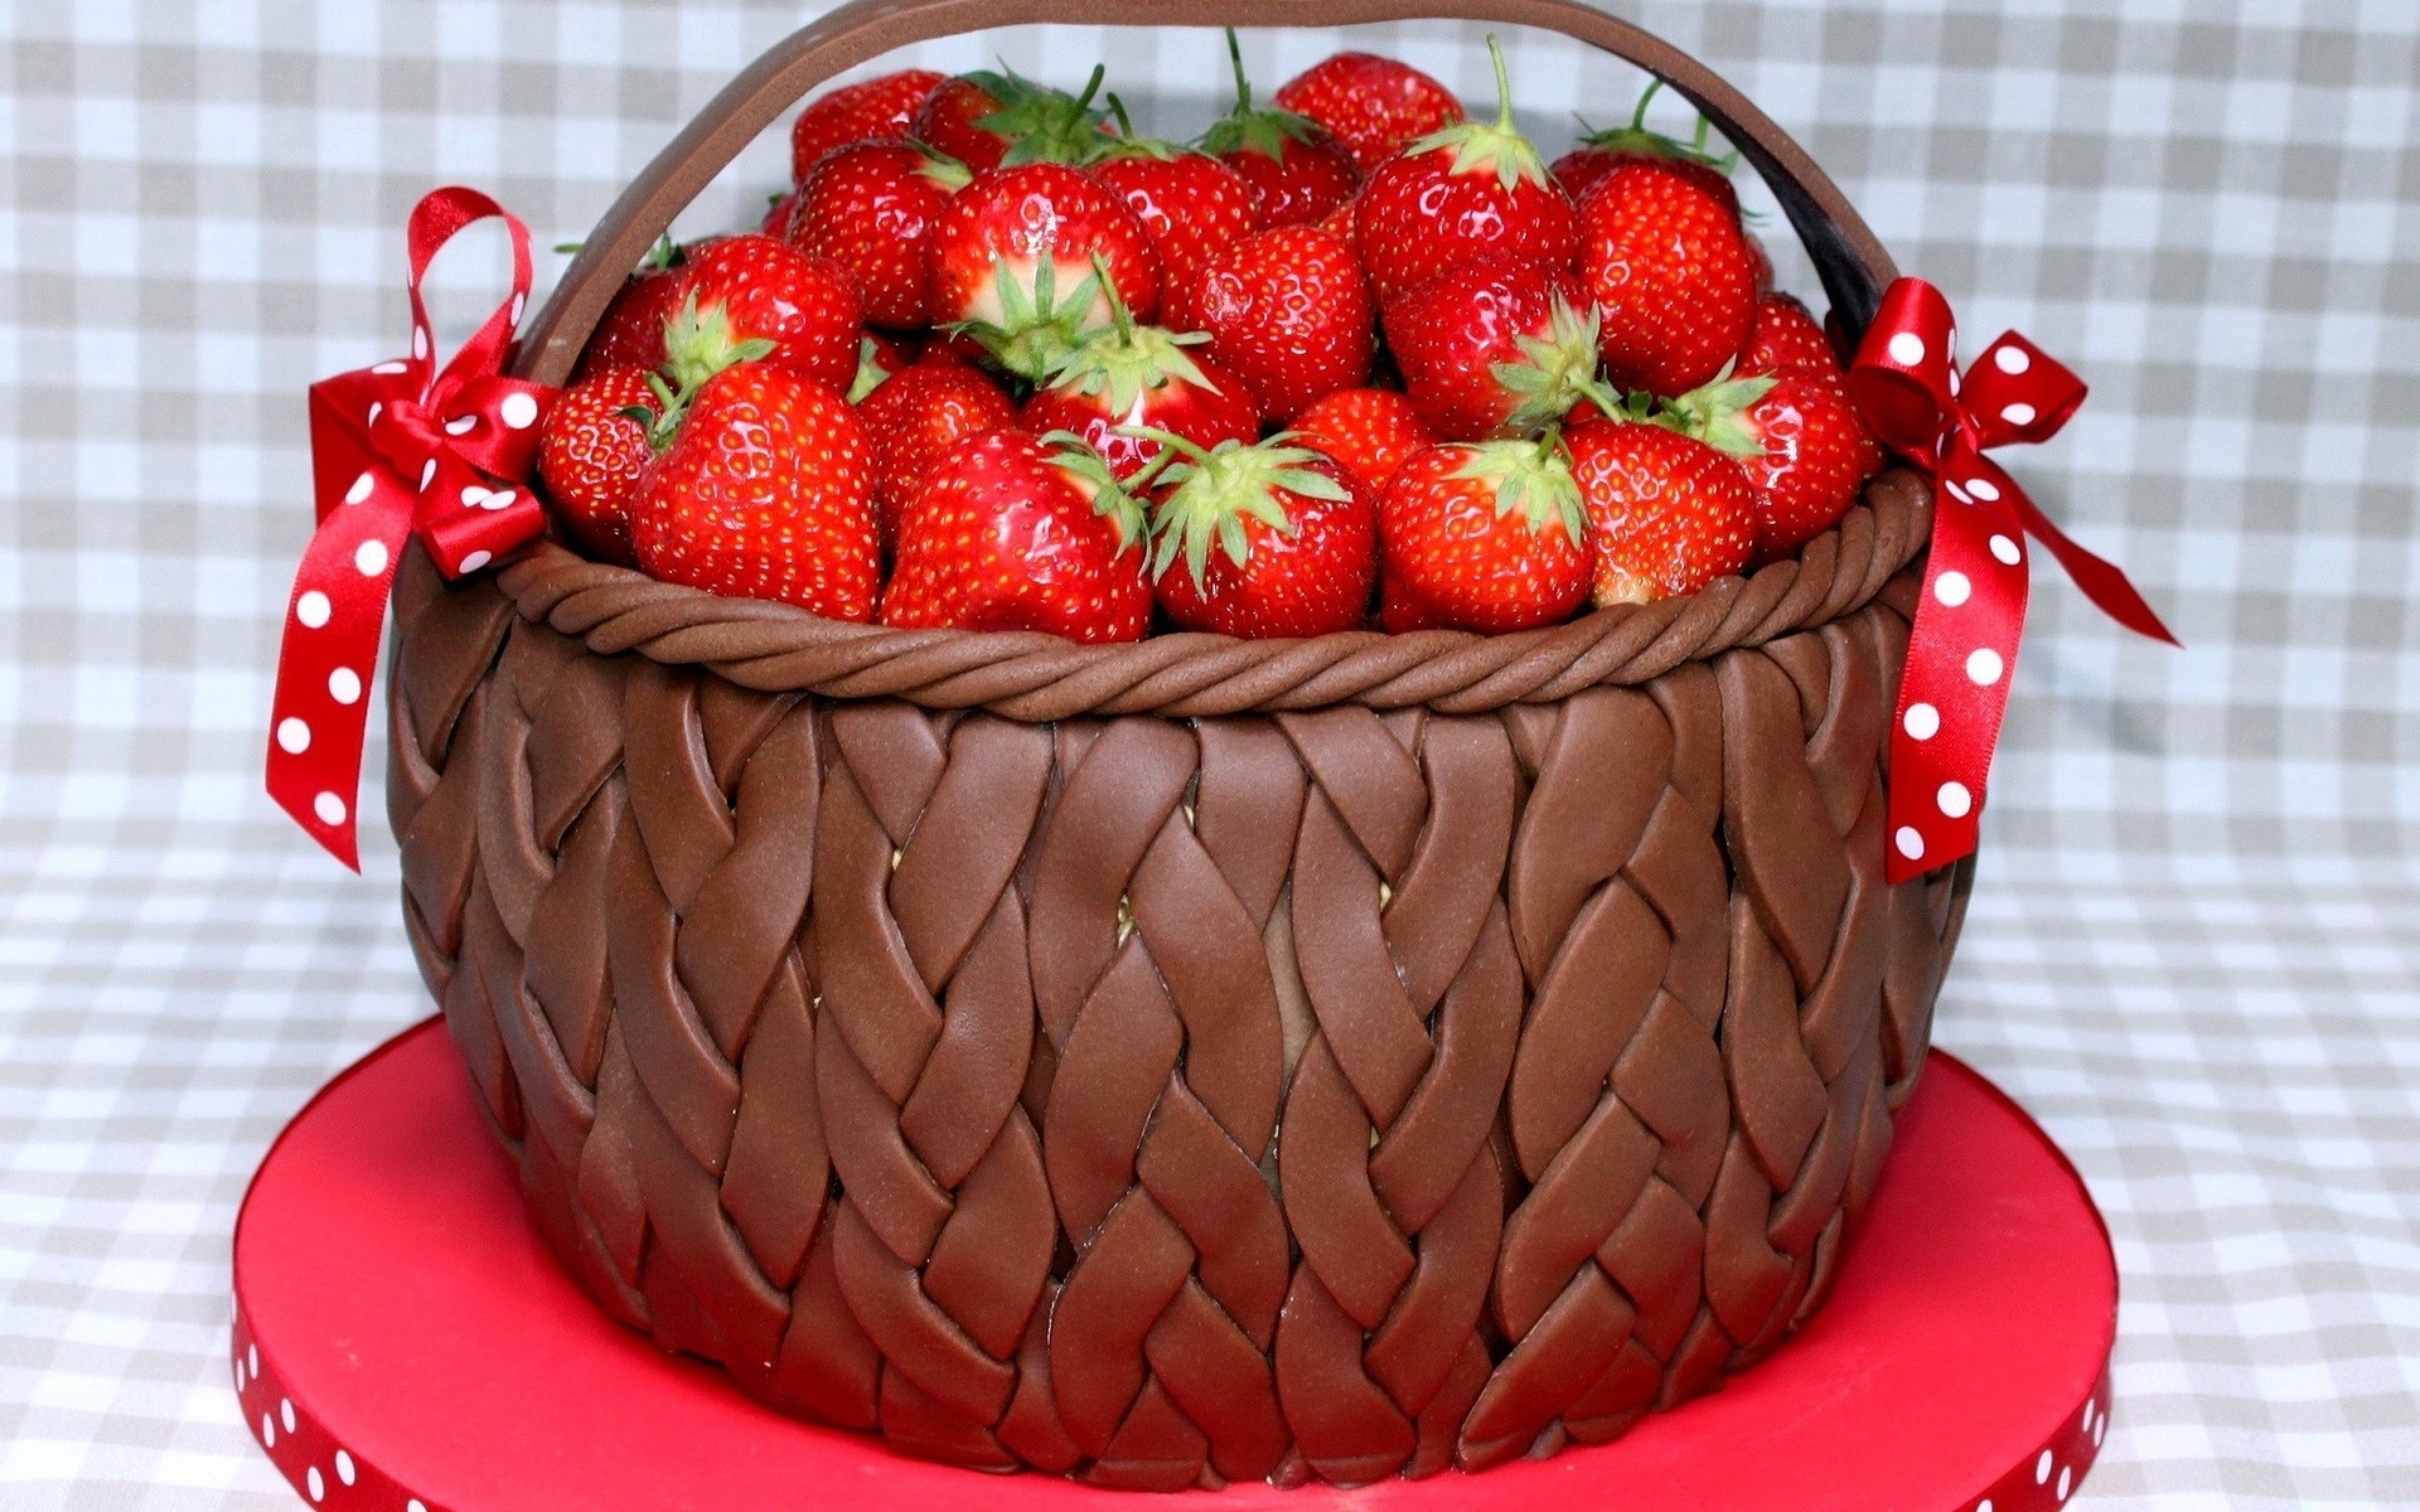 4k cakes wallpapers high quality download free